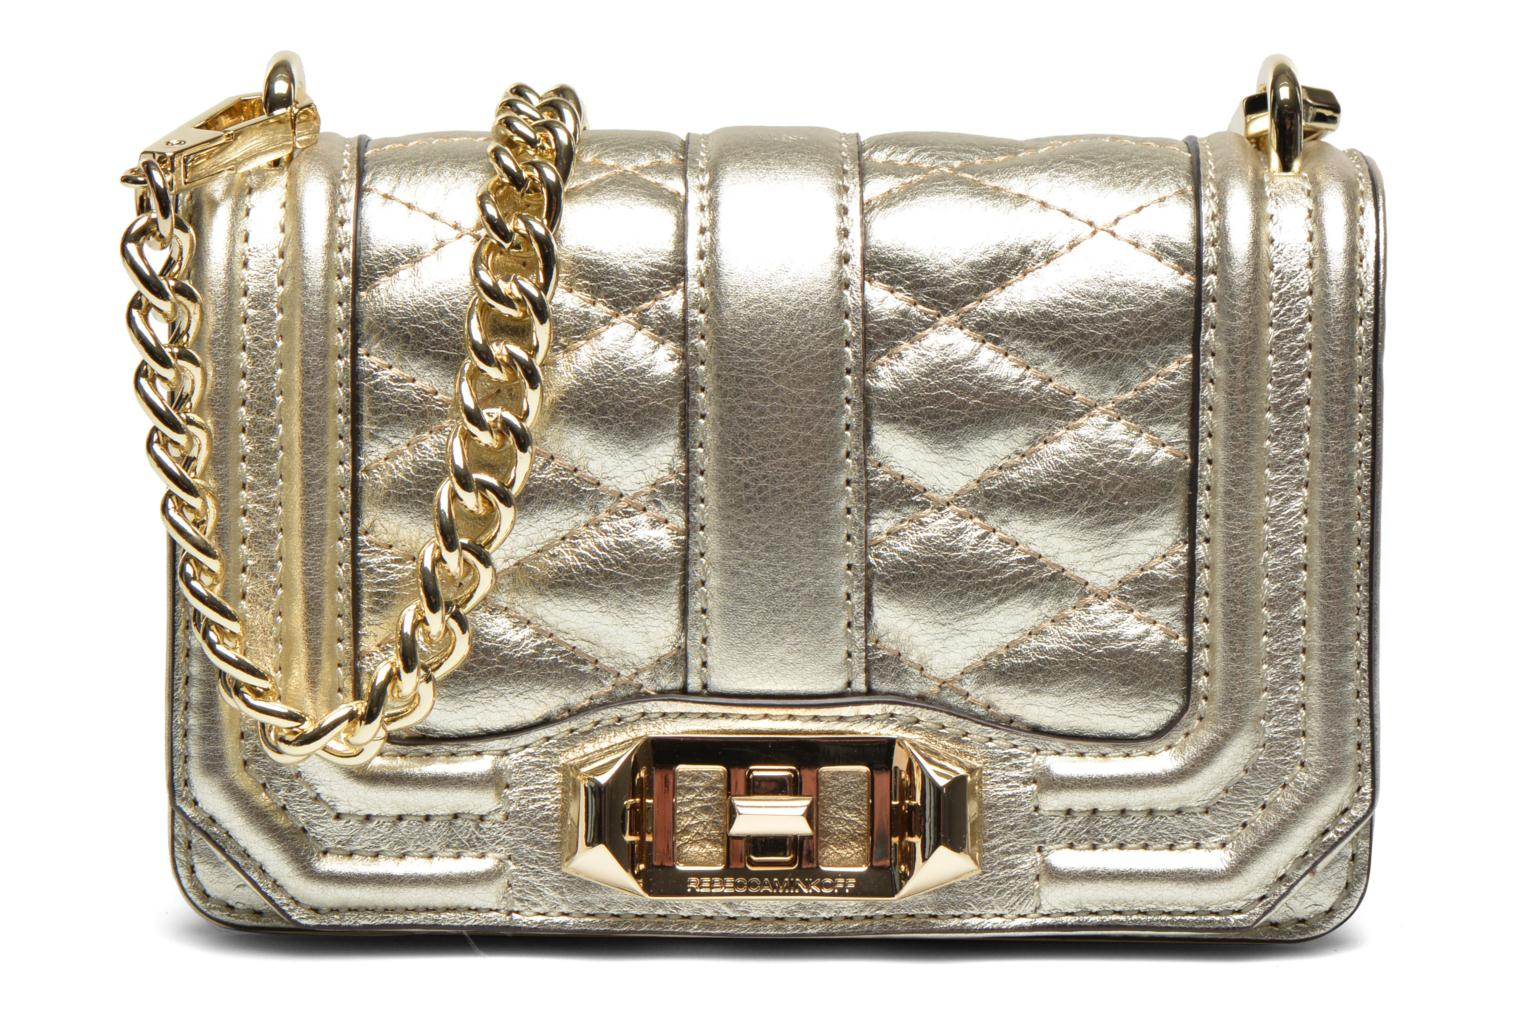 Handtassen Mini Love Crossbody by Rebecca Minkoff